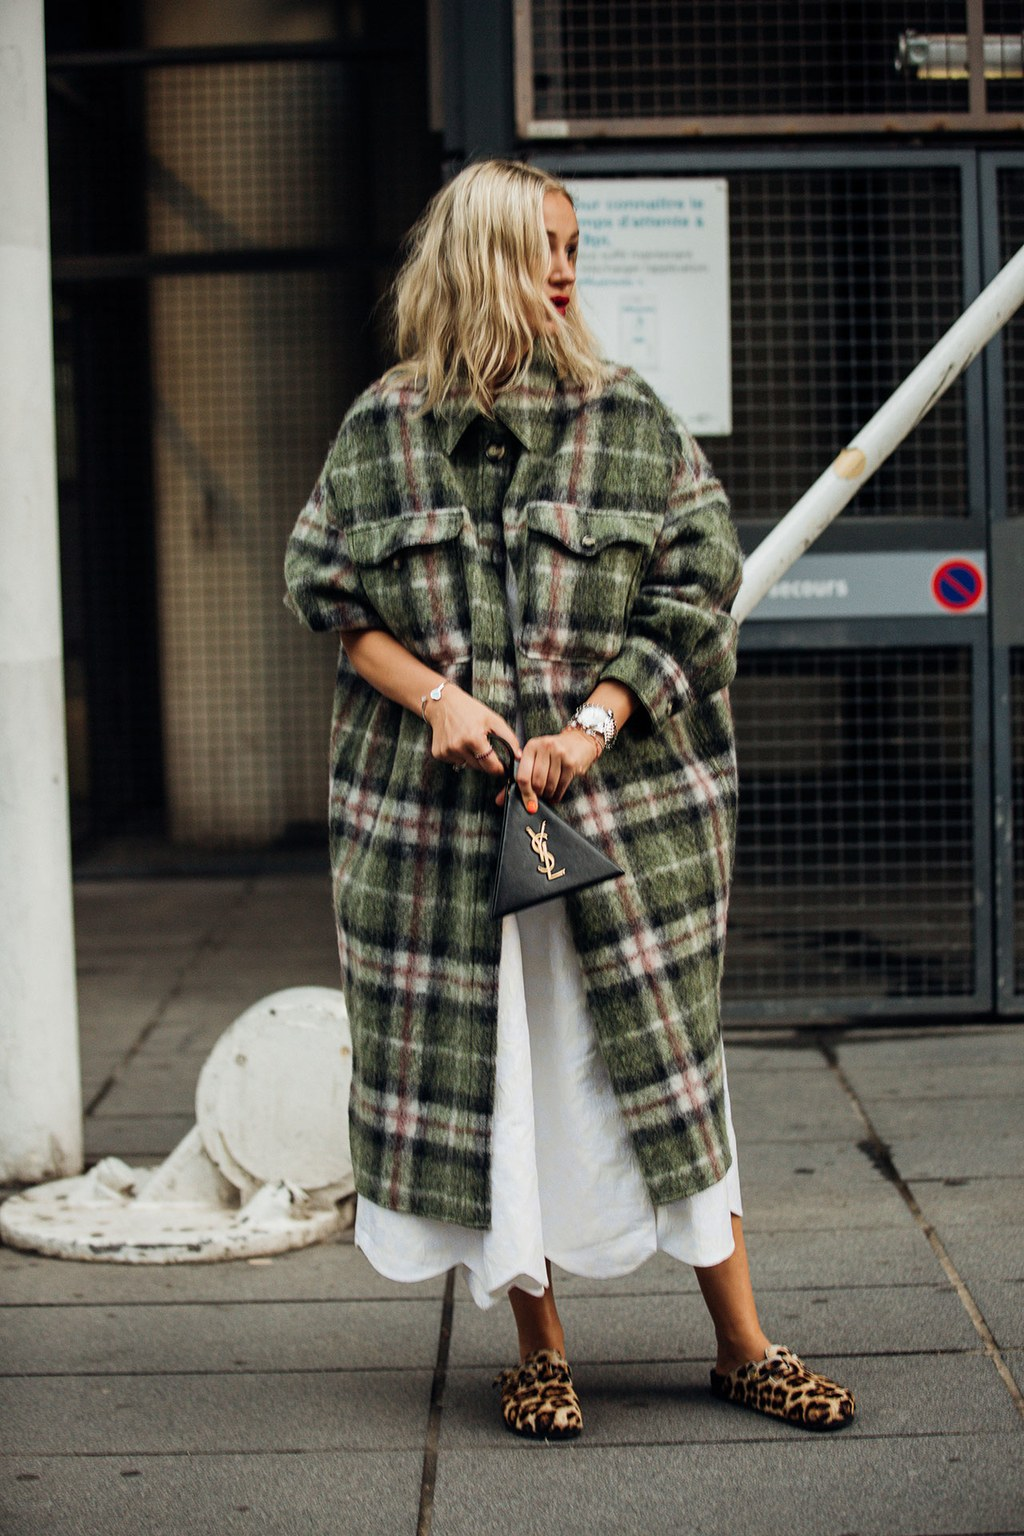 This Street Style Look Is the Epitome of Cozy-Cool — Long Plaid Wool Coat and Leopard-Print Clogs